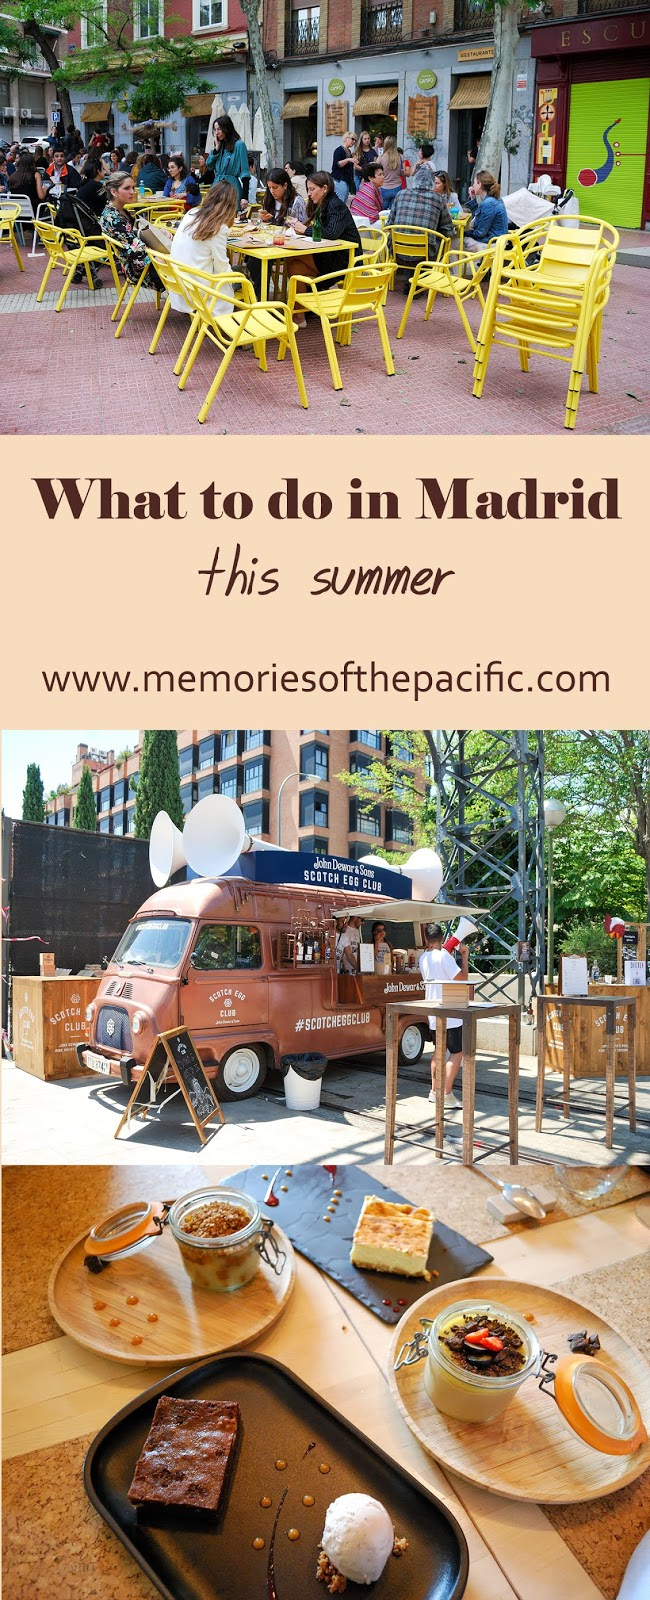 travel guide madrid summer restaurant museum activities